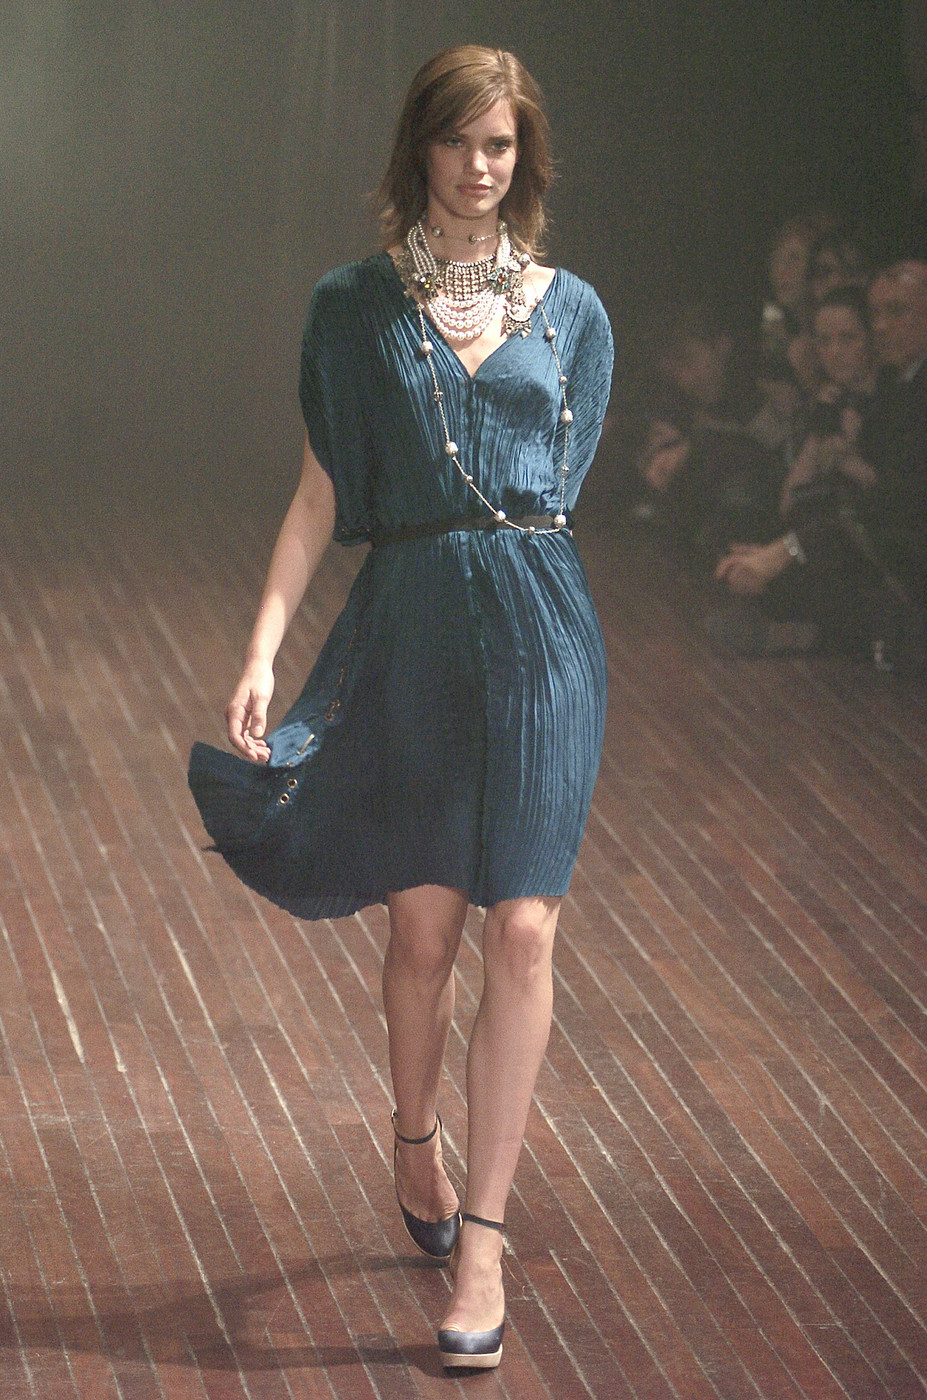 via fashioned by love | Lanvin Spring/Summer 2005